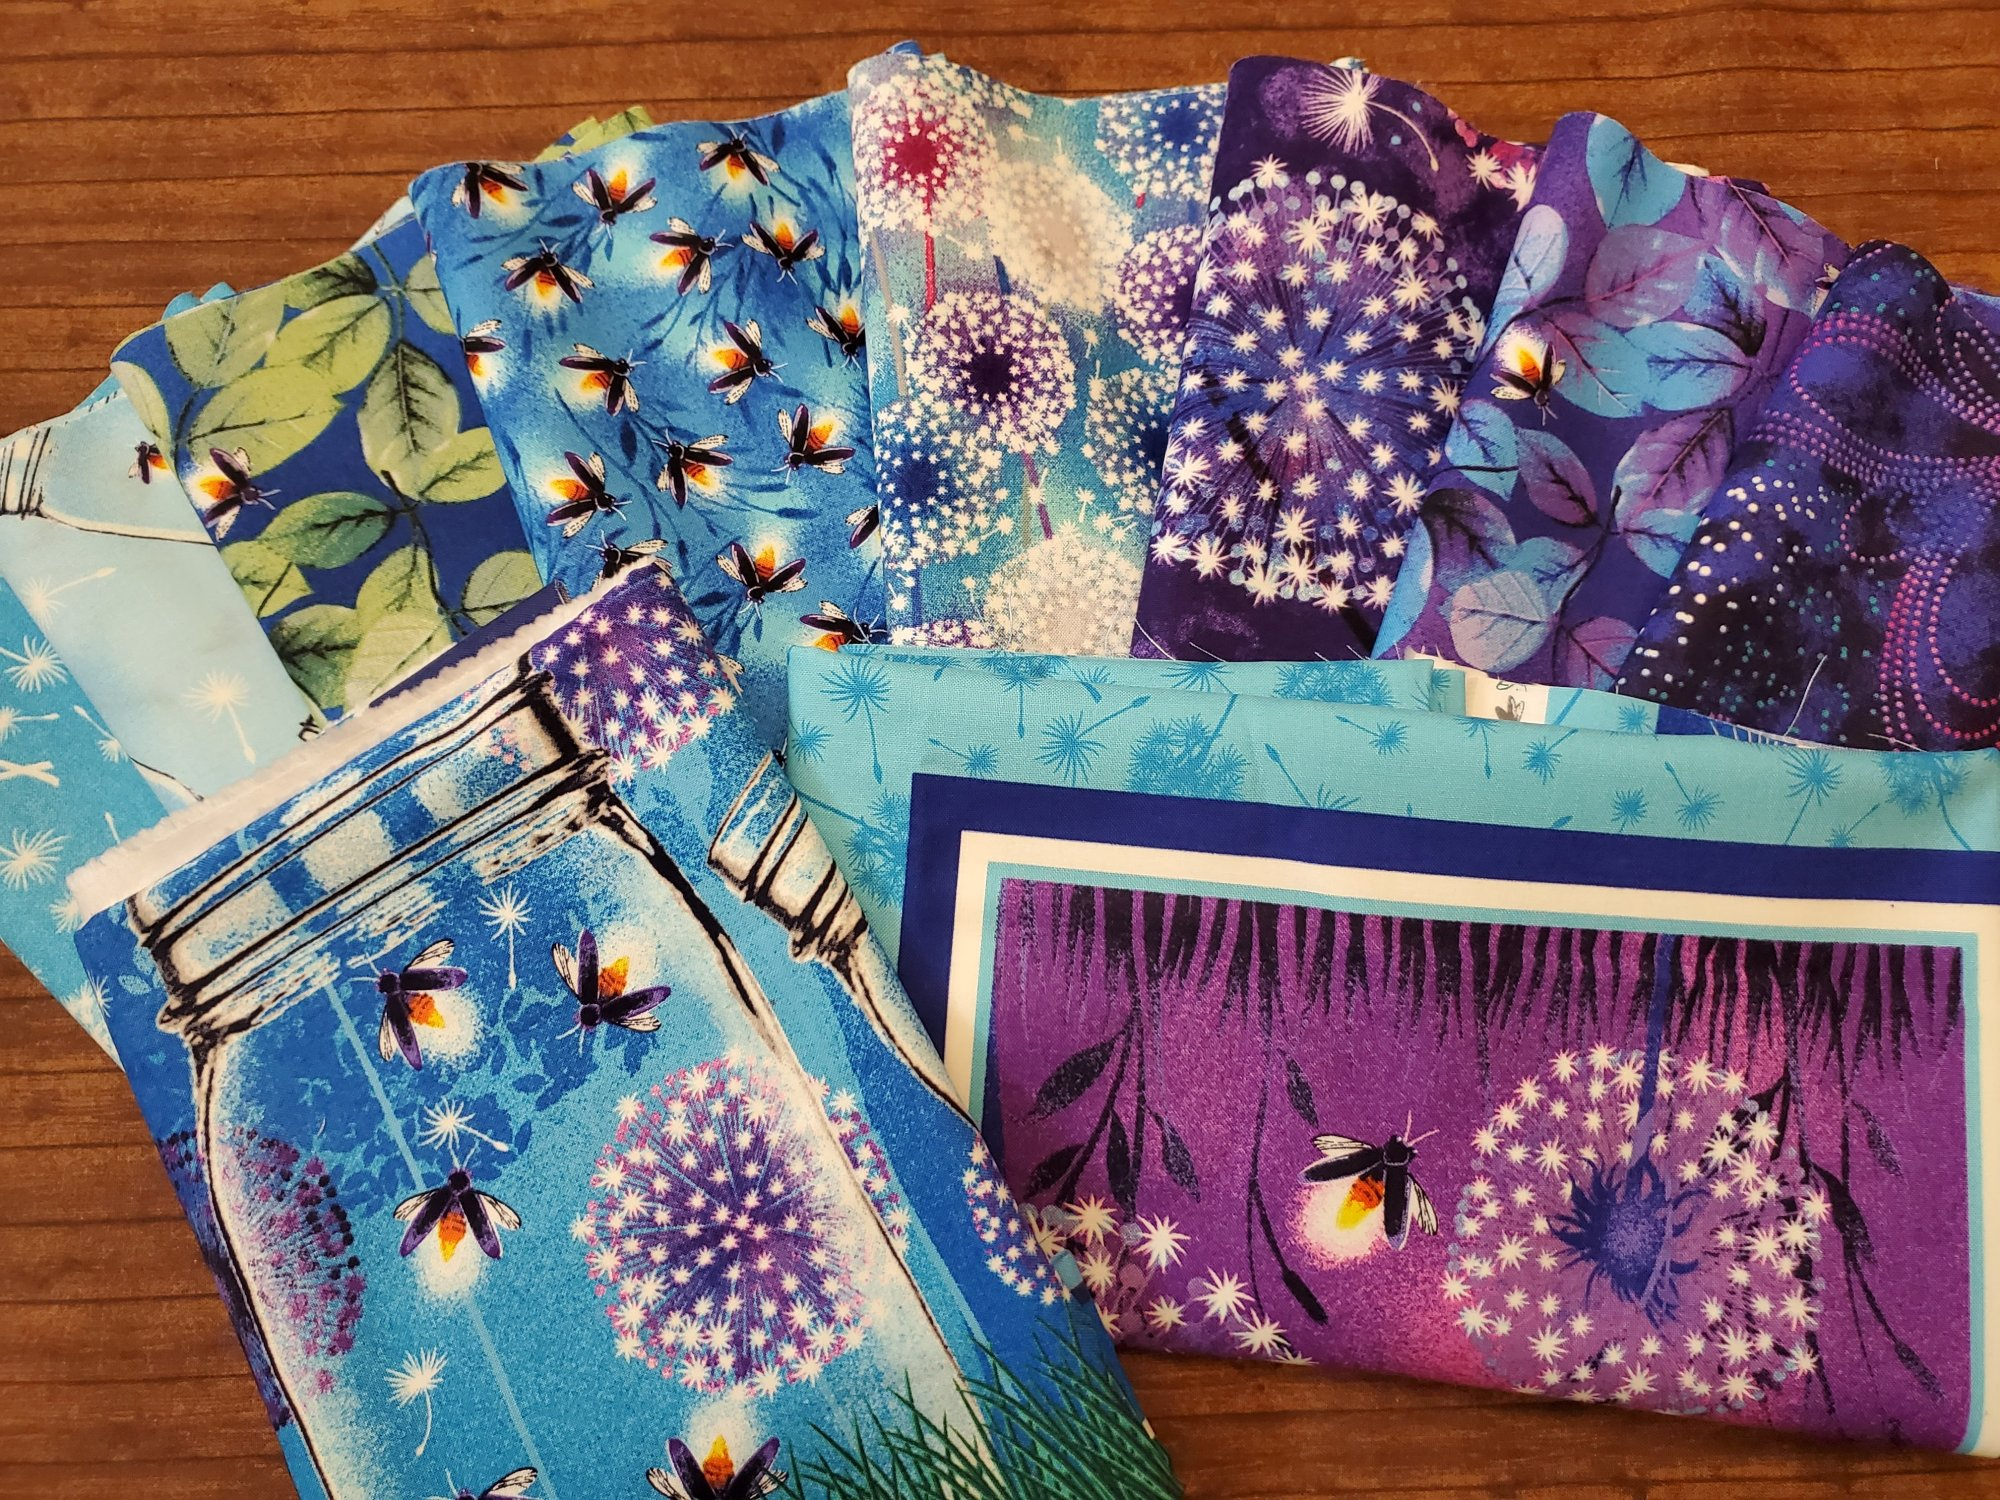 Let Your Light Shine - 8 half yards plus 2 panels bundle pack - by Blank Quilting - all Glow in the Dark Fabrics